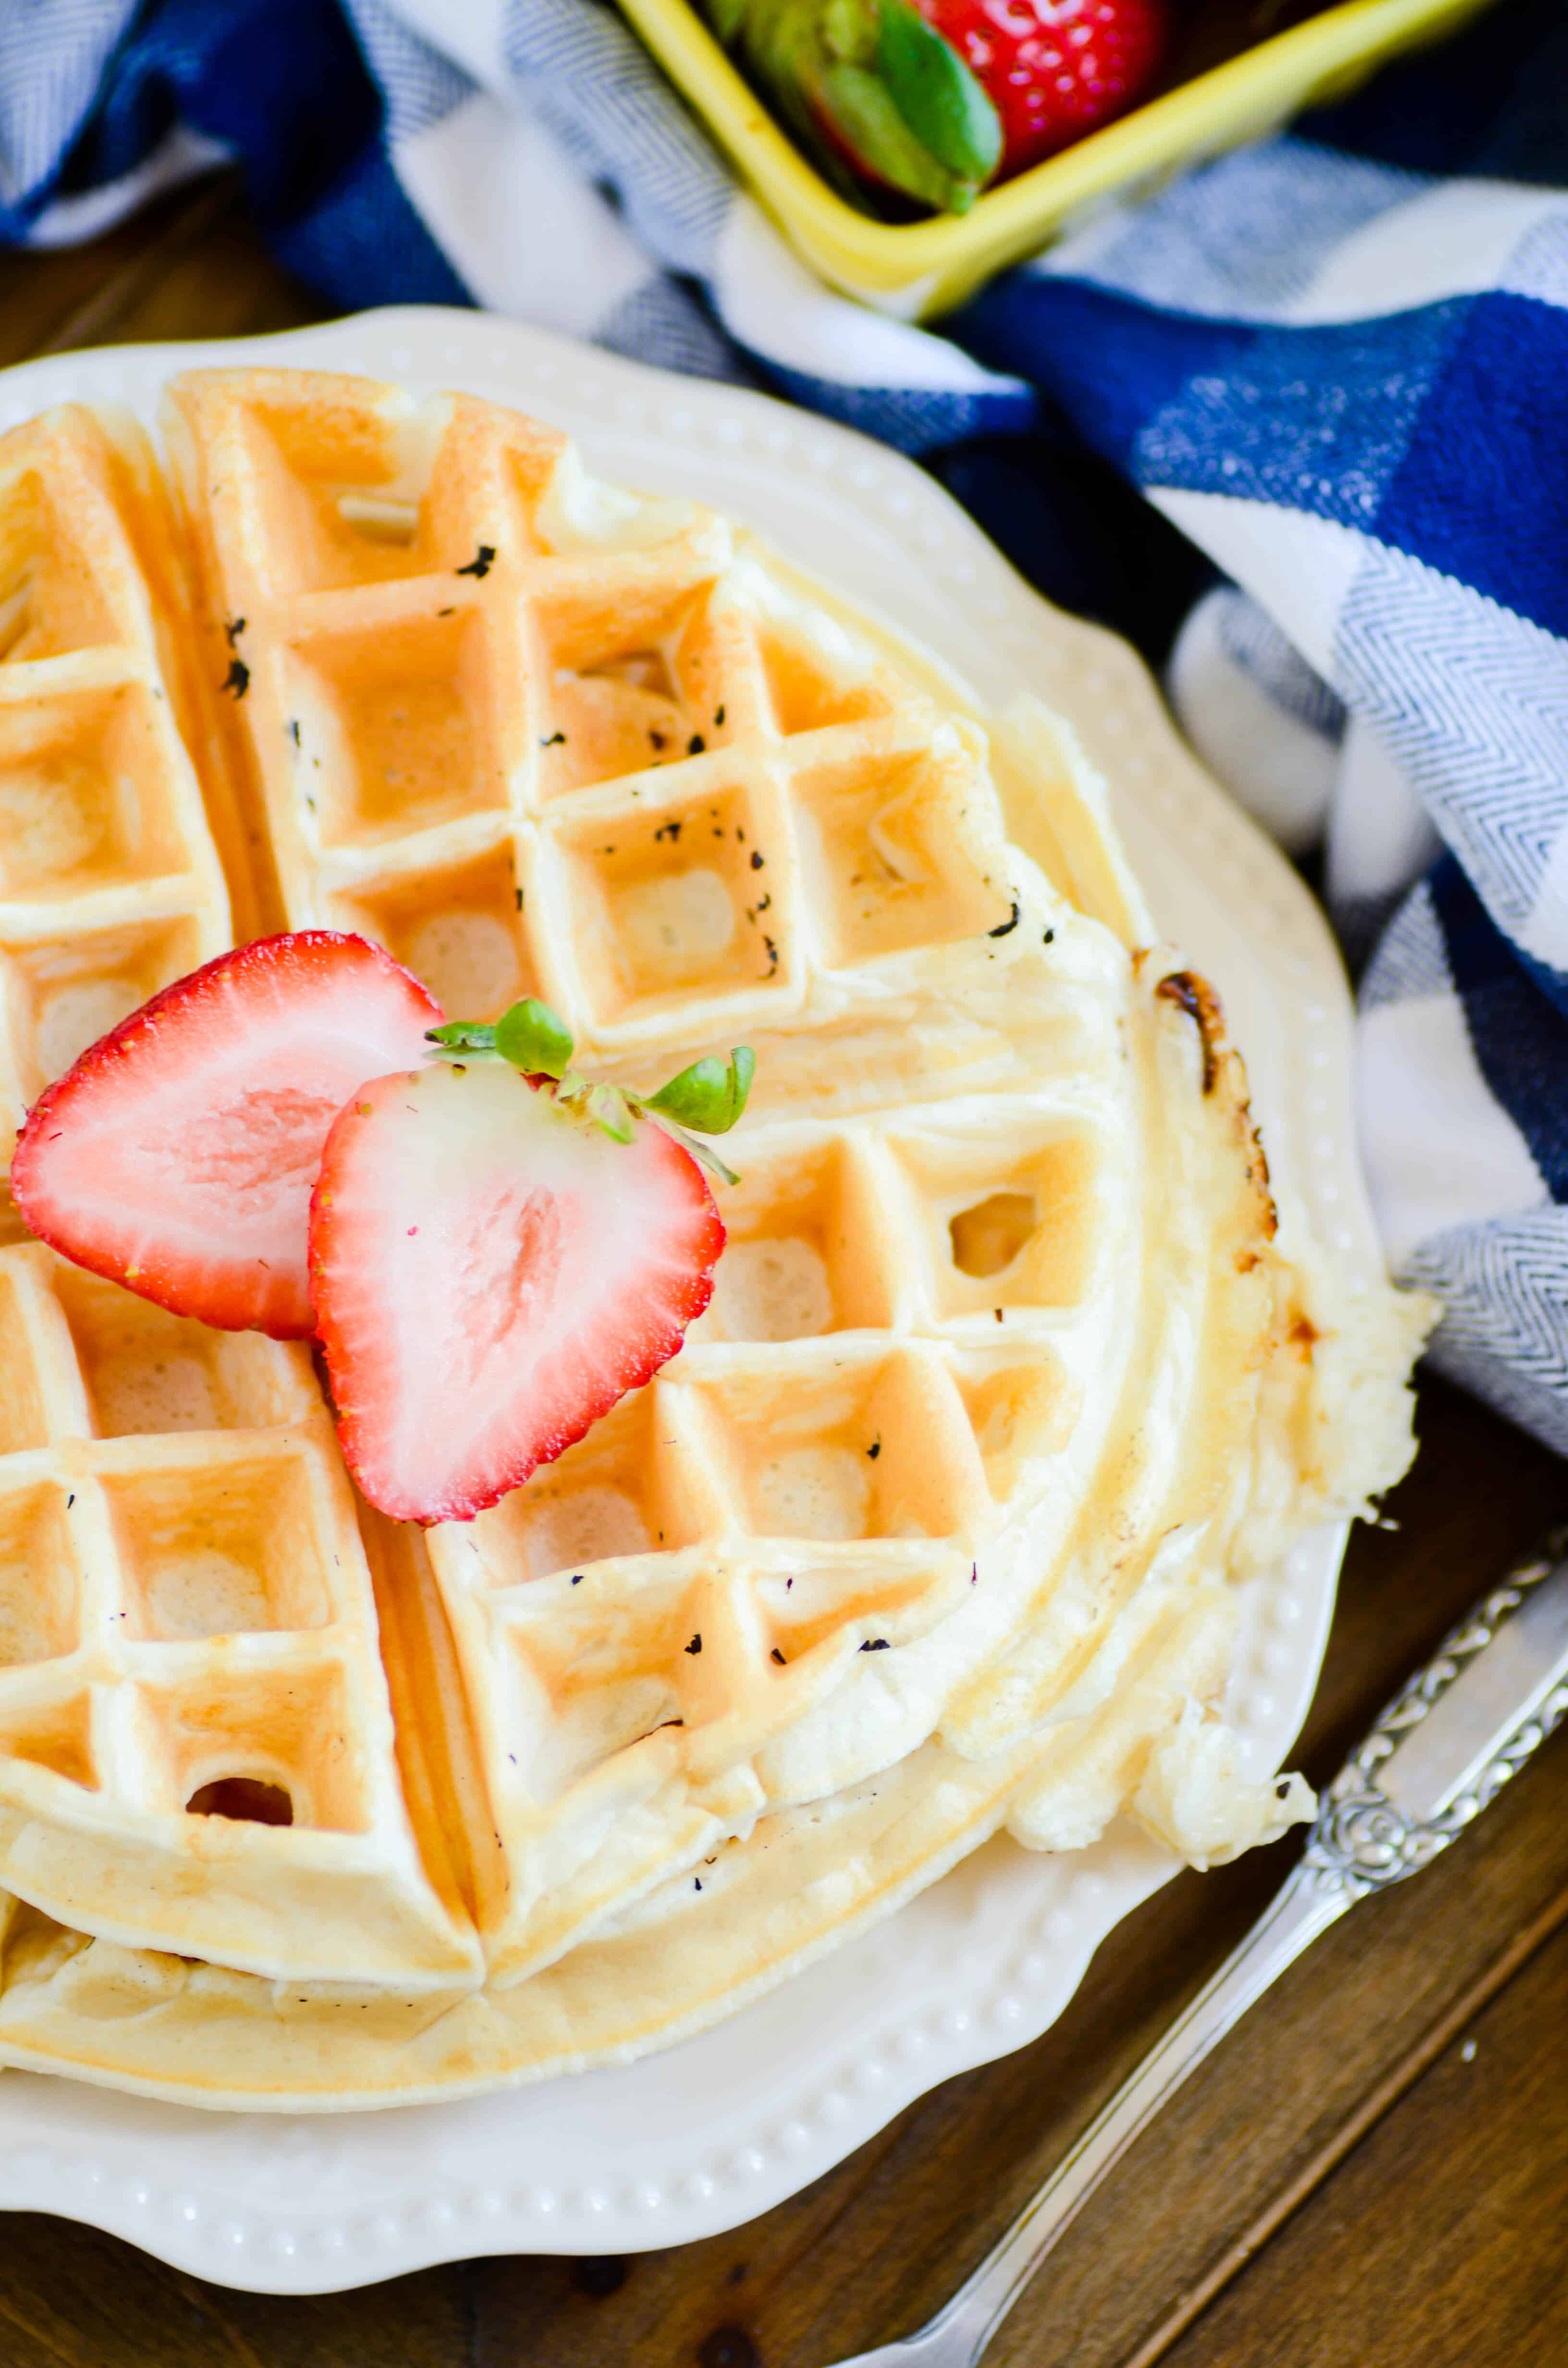 You'll be shocked at how good these protein waffles taste. They're just as a soft and fluffy as Belgian waffles, but they pack in 15g of protein and lots of vitamins and minerals!